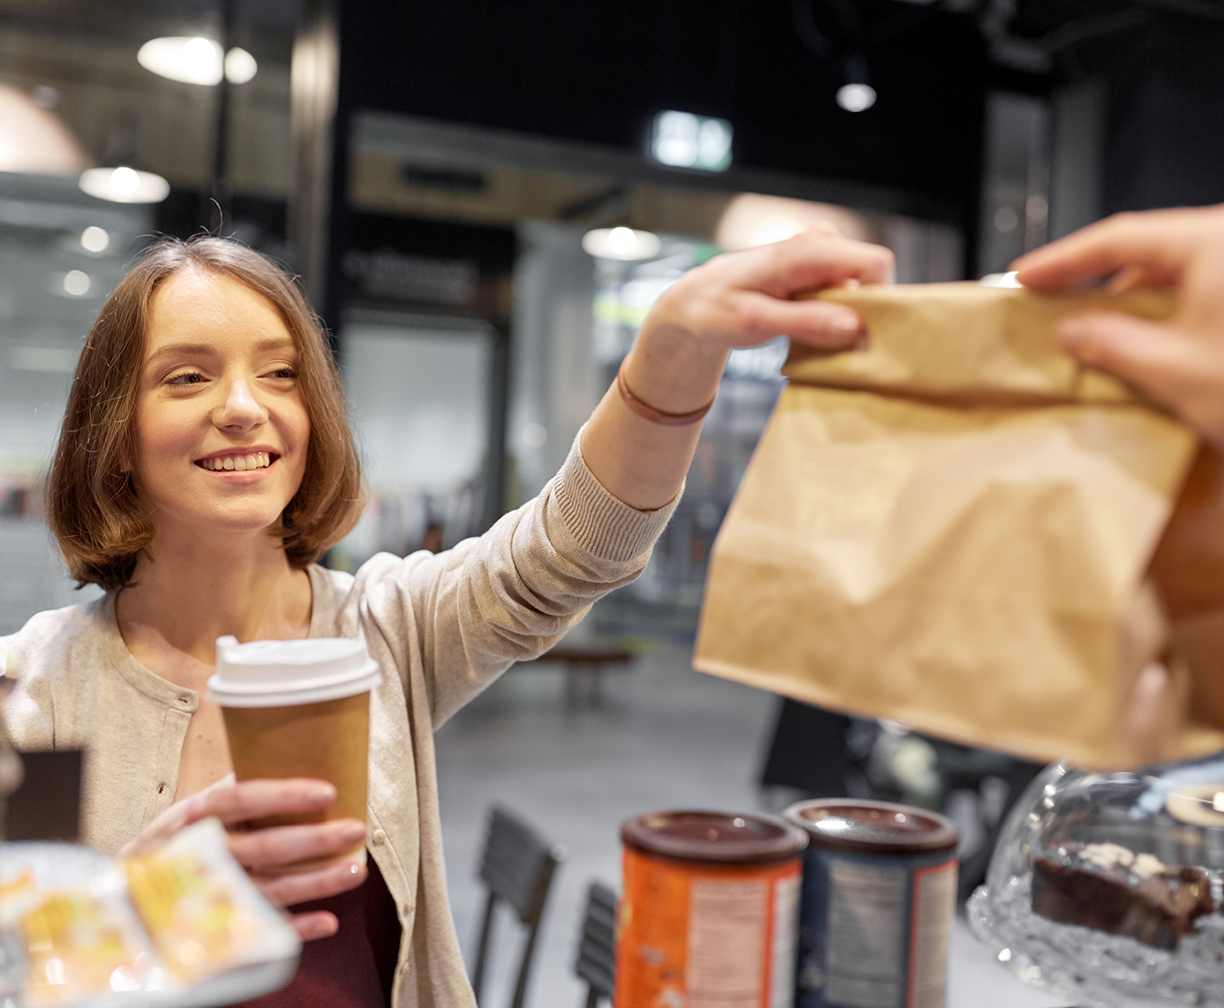 A young female customer grabbing her order from a cafe while smiling, to represent how Spot Parking is supporting local businesses